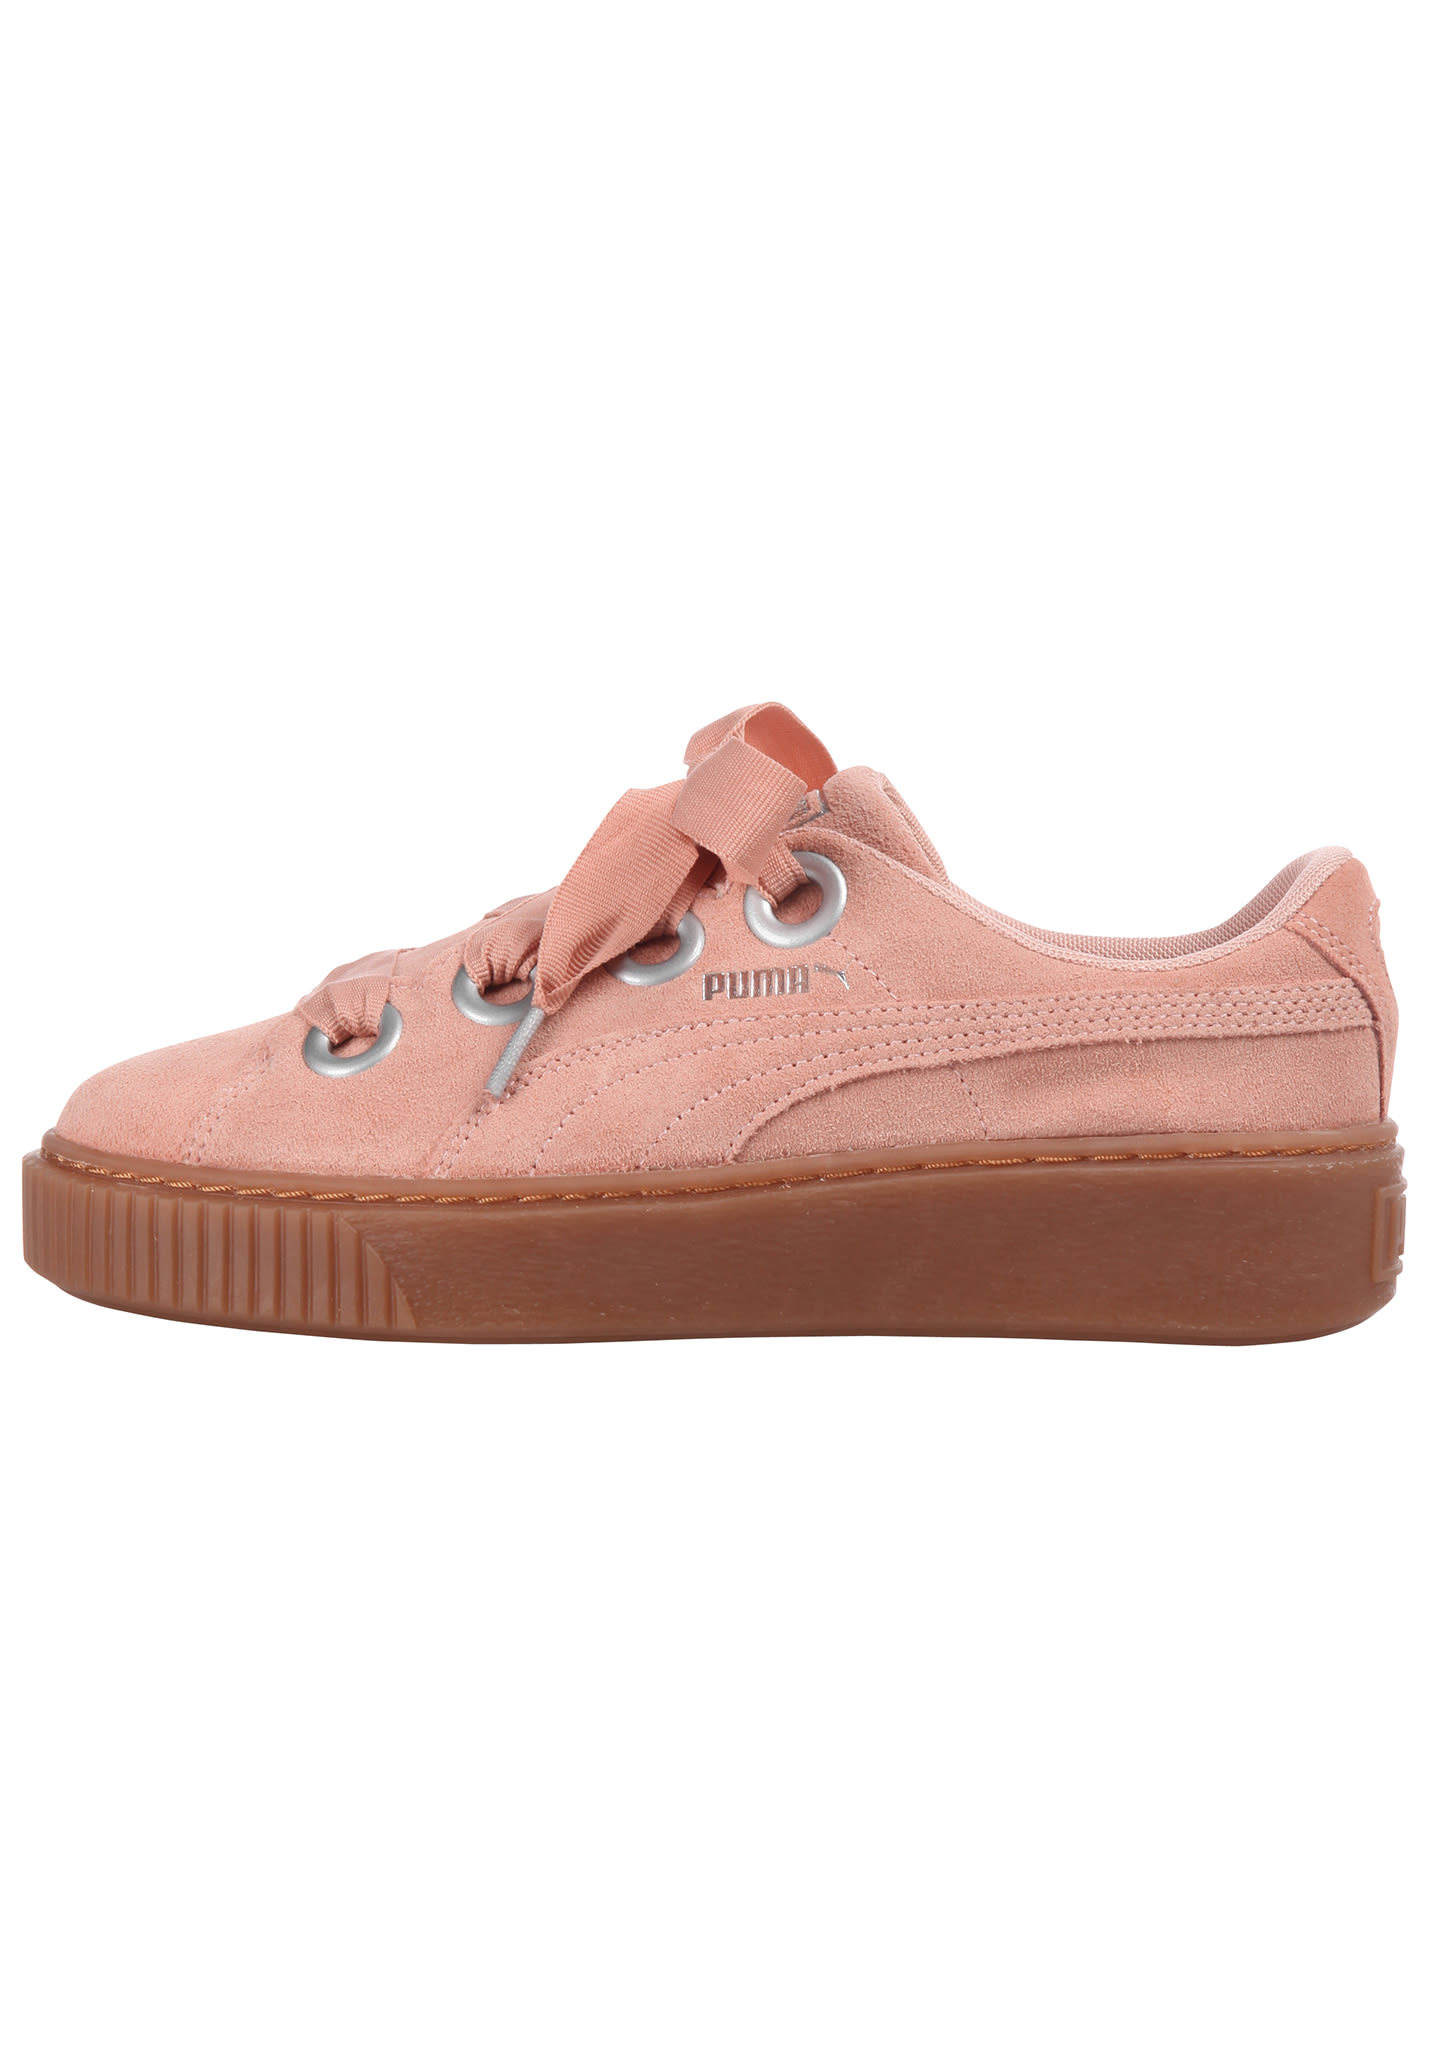 For Women Pink Puma Sneakers Kiss Suede Platform W9H2eEYID